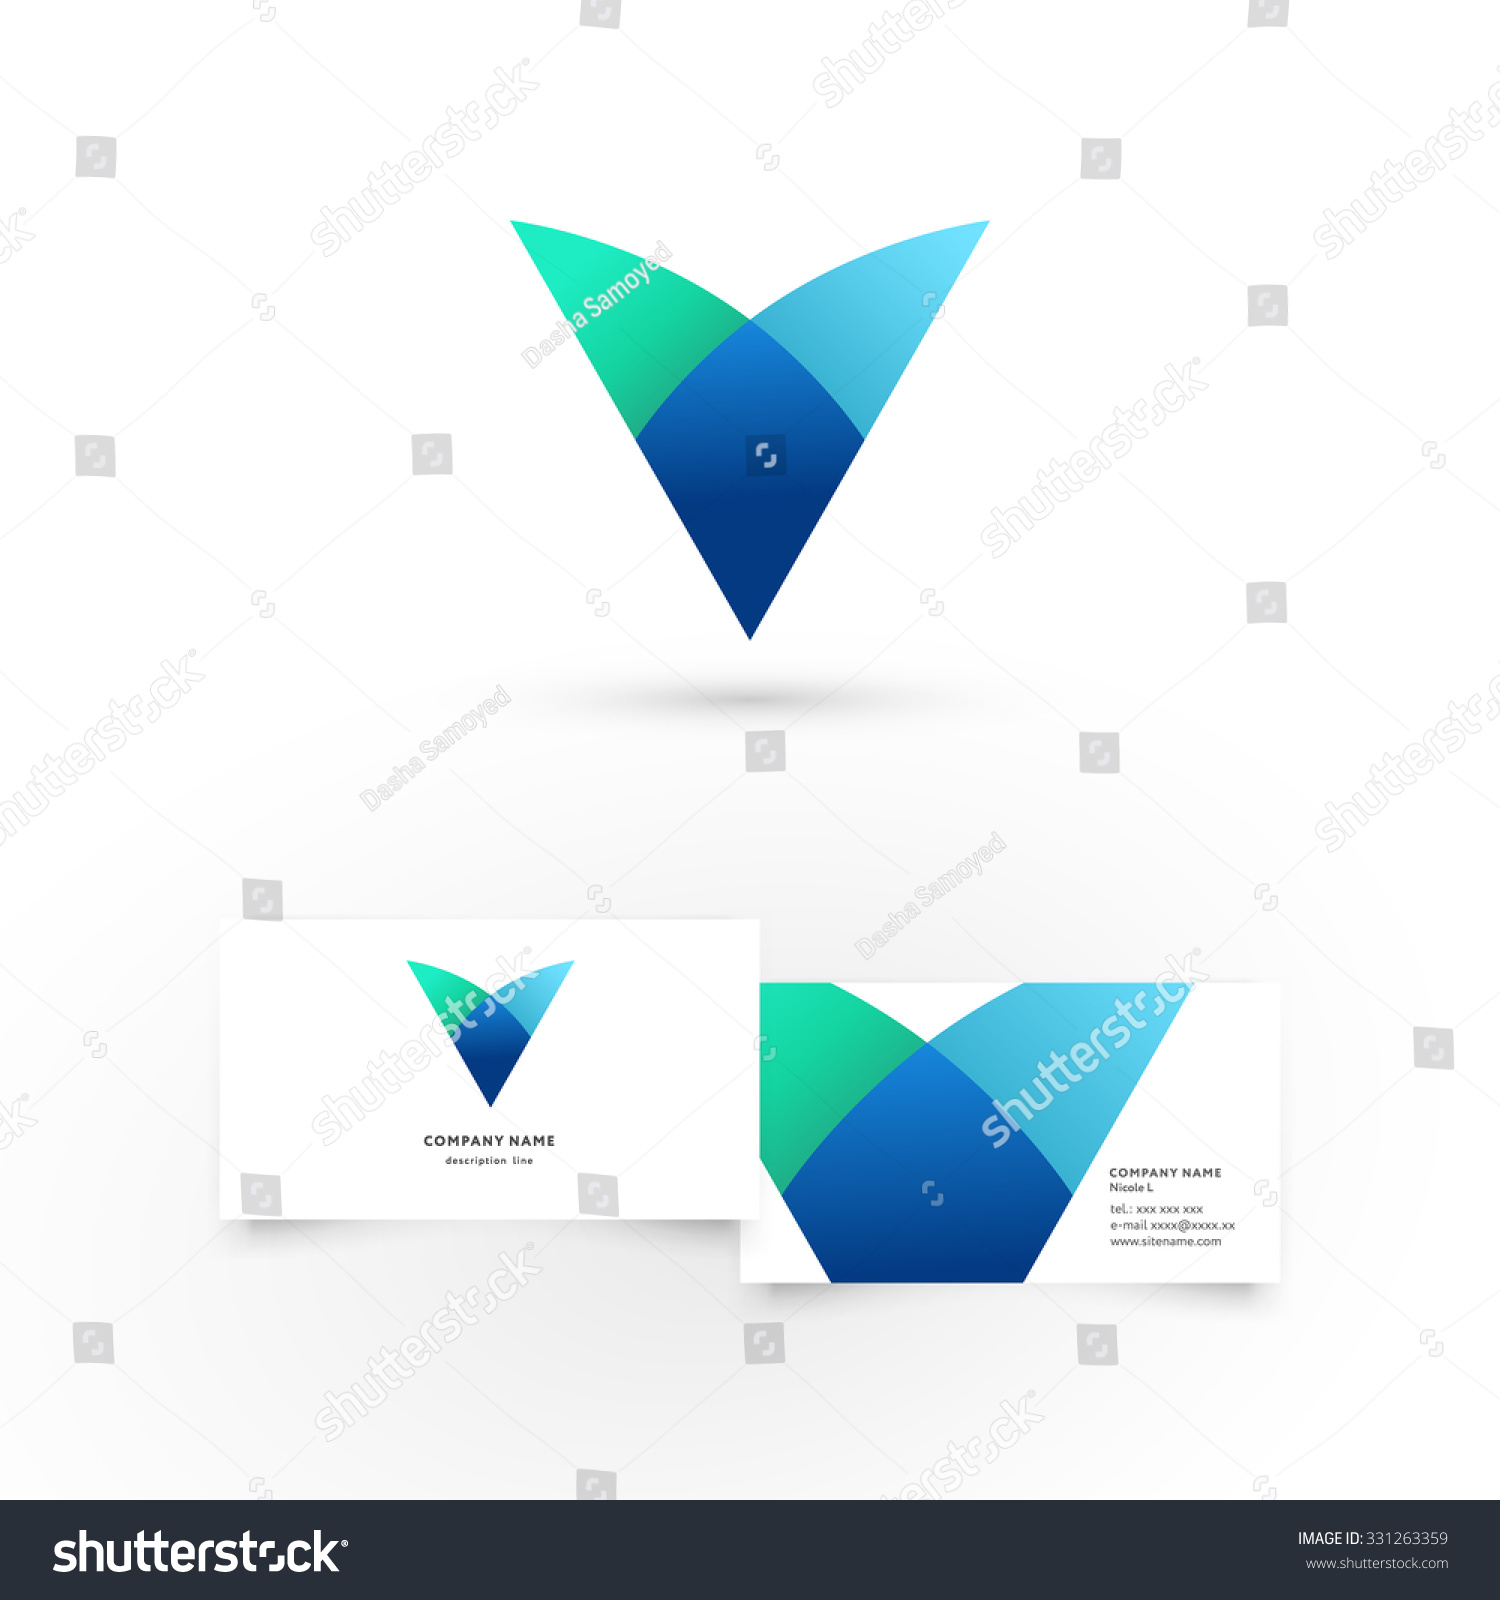 Modern icon design v letter shape stock vector 331263359 modern icon design v letter shape element with business card template best for identity and magicingreecefo Choice Image